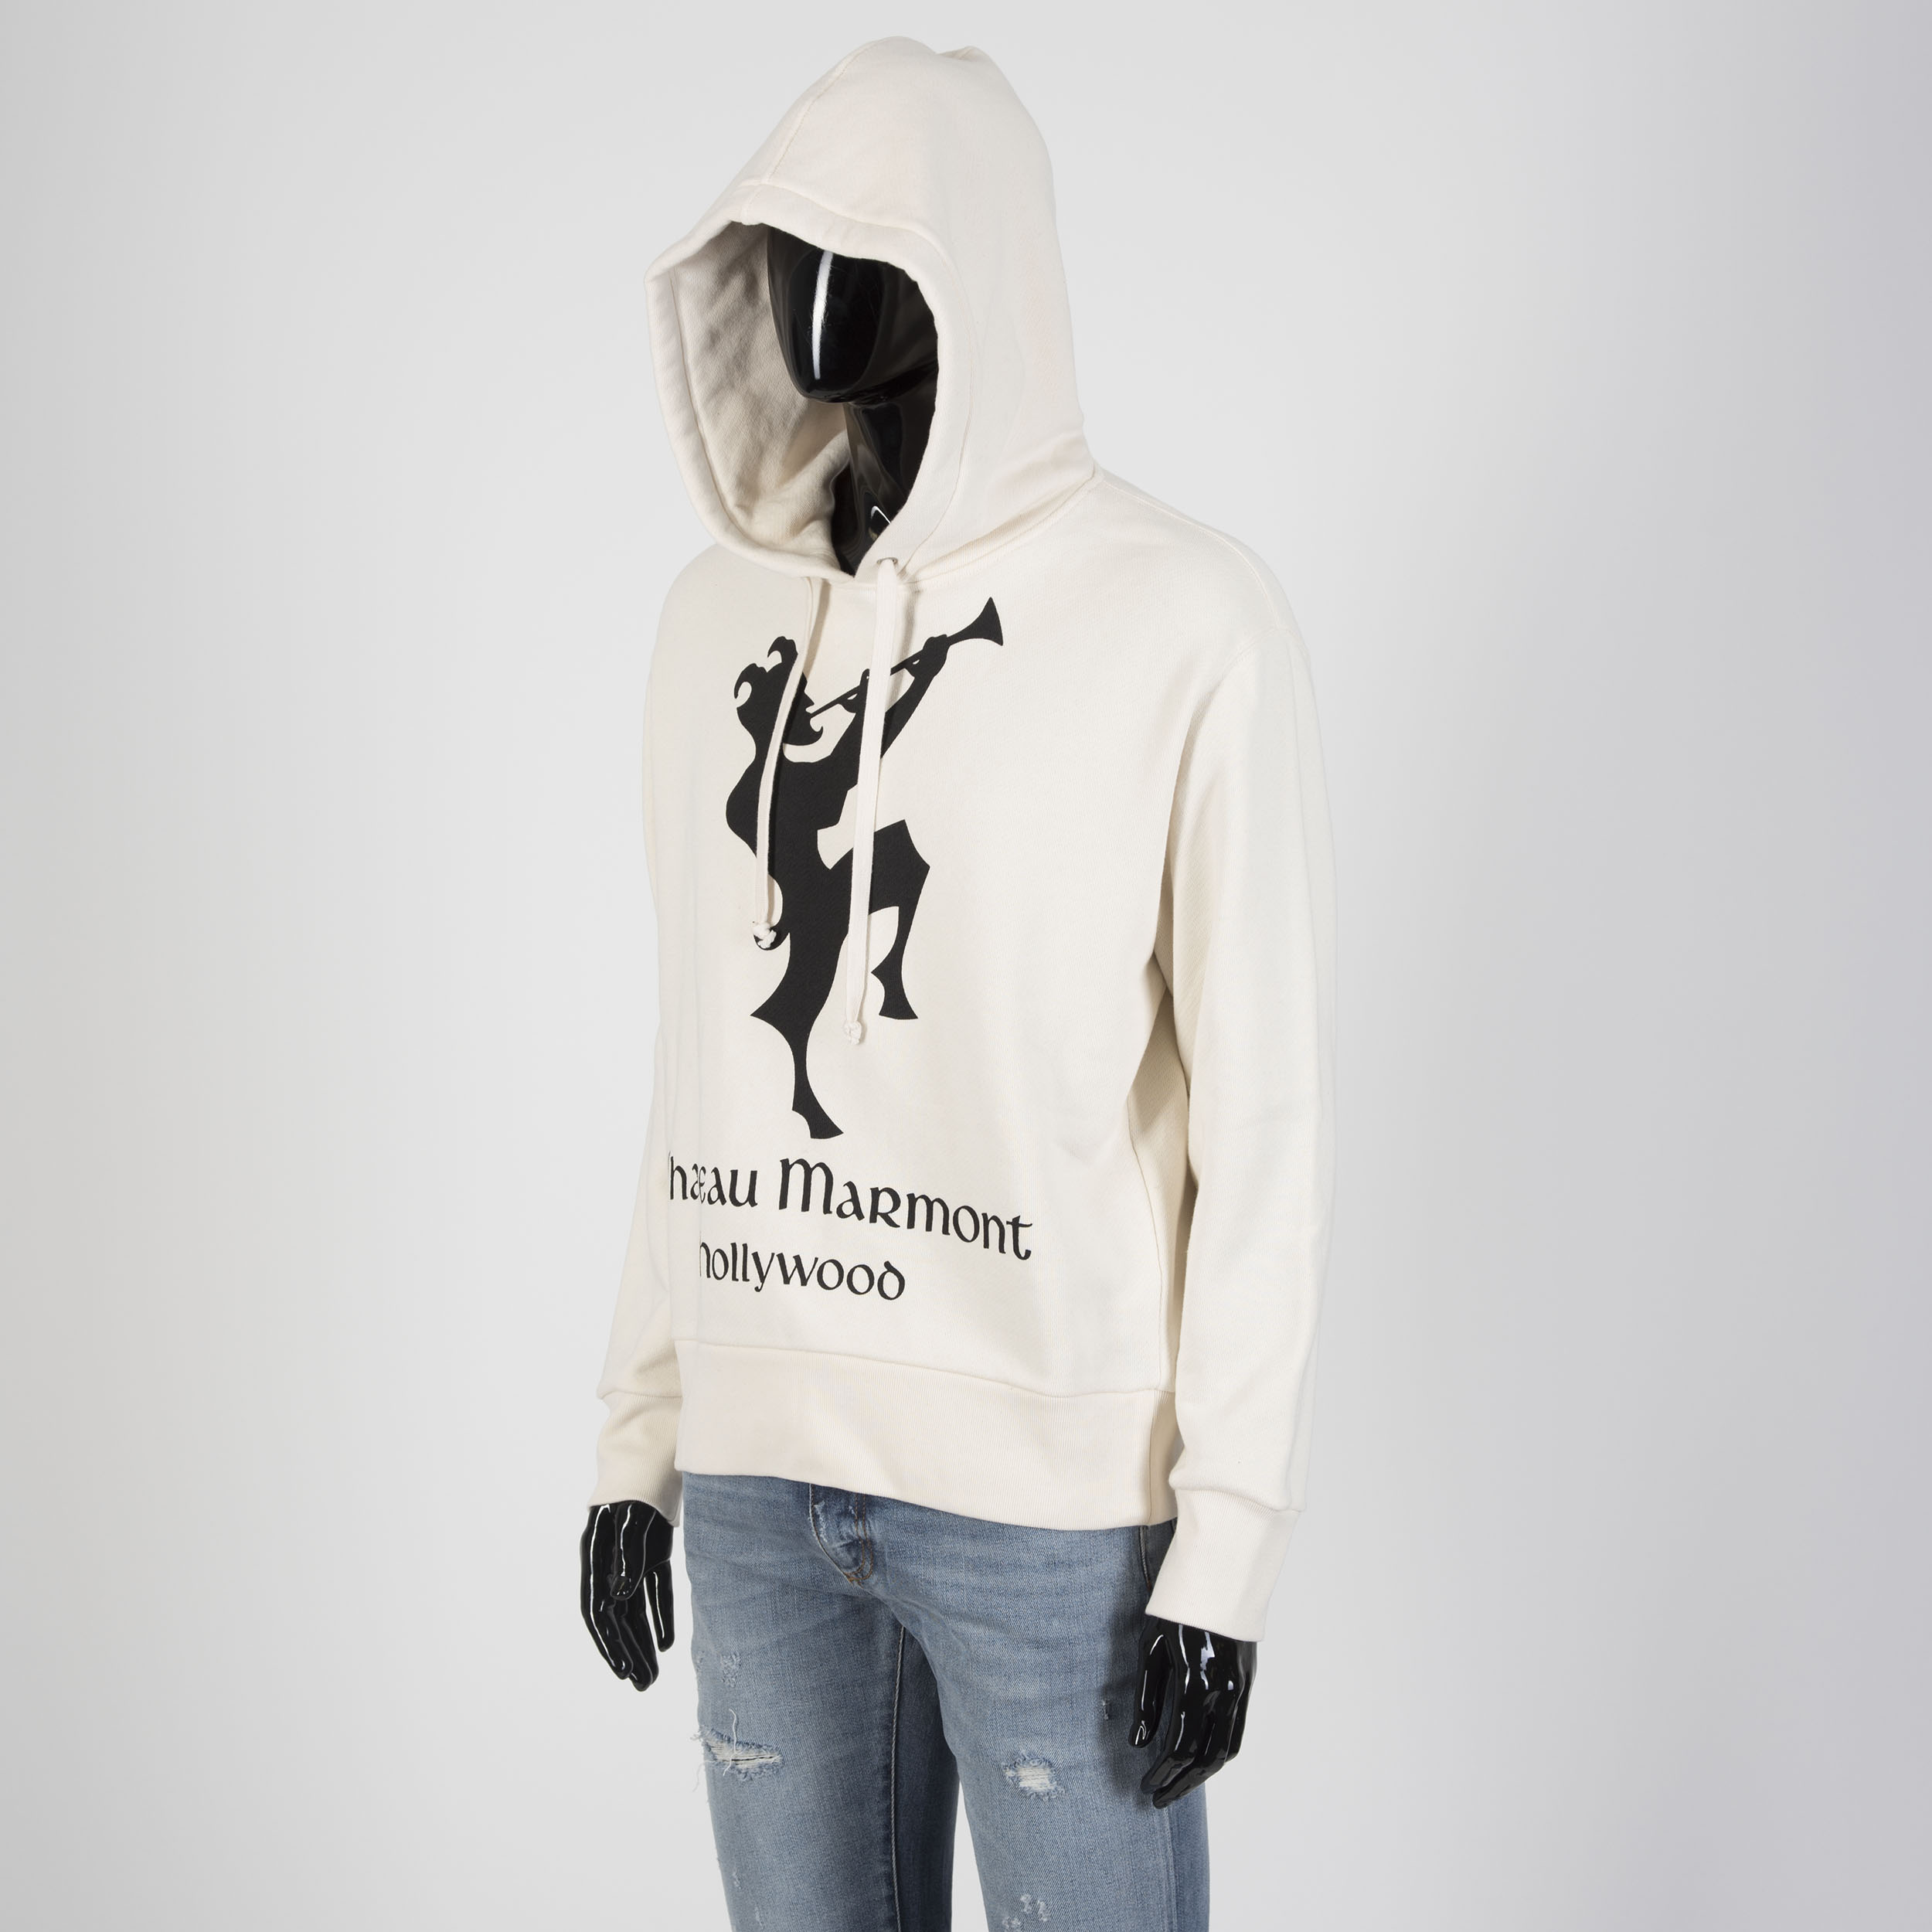 6926bbda75fc Details about GUCCI 1400$ Chateau Marmont Hollywood Print Hooded Sweatshirt  In Off White